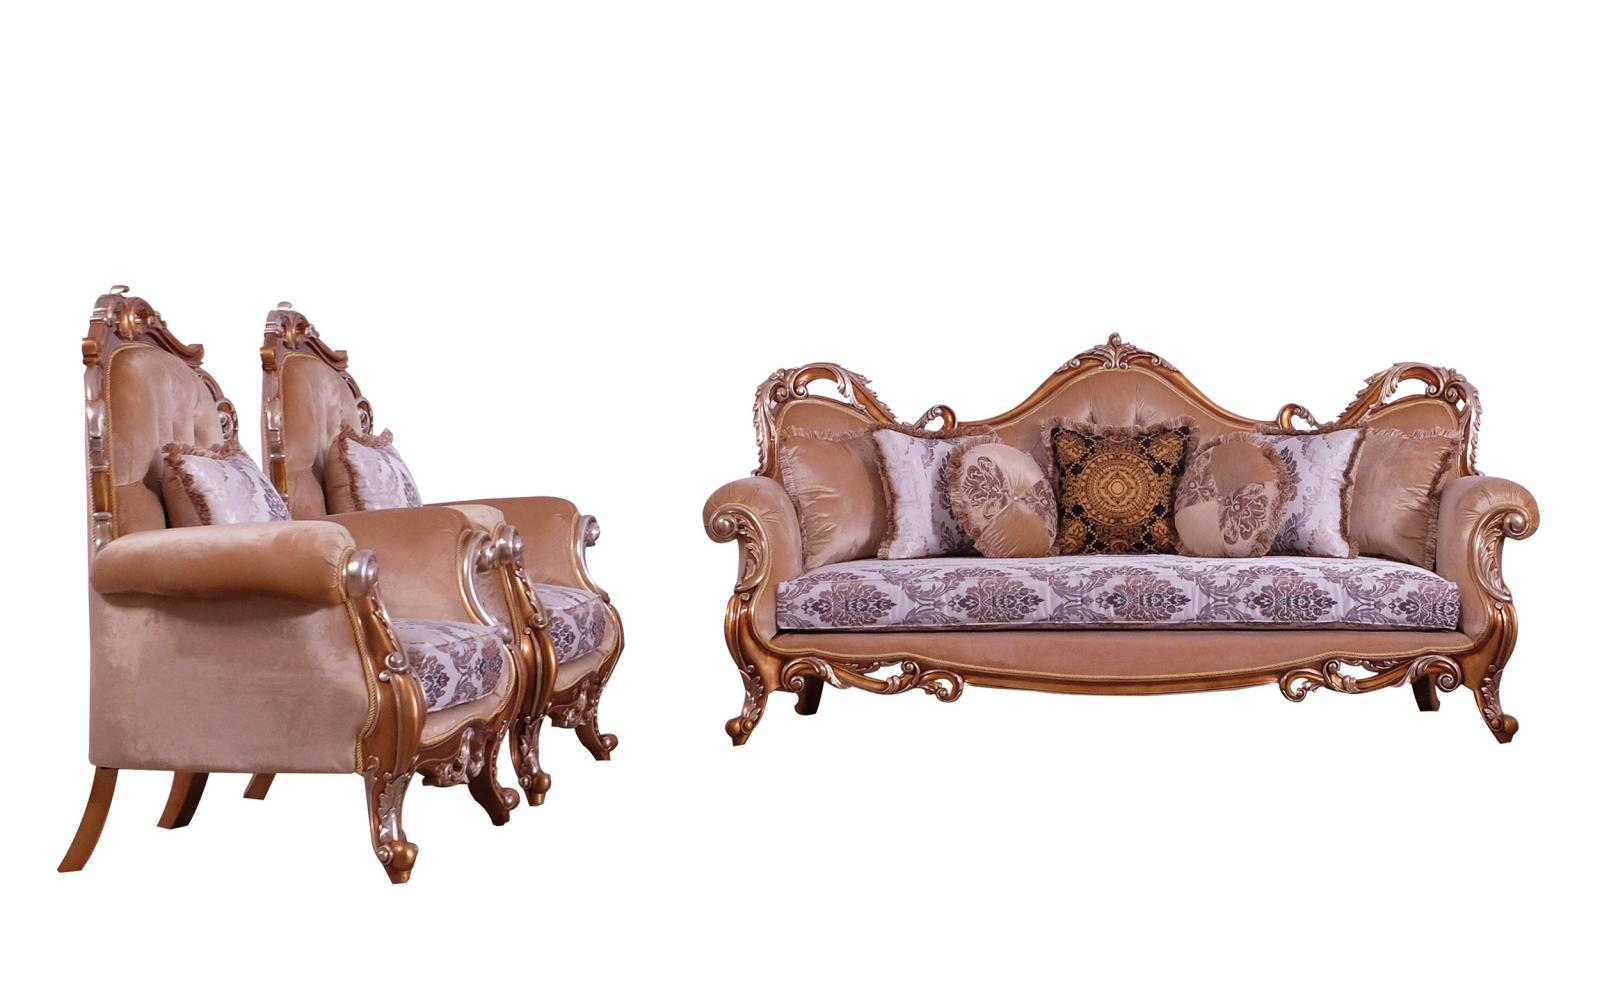 Classic  Traditional Gold  Silver  Antique   Black Wood  Solid Hardwood and Fabric Sofa Set EUROPEAN FURNITURE 38996-S-Set-3